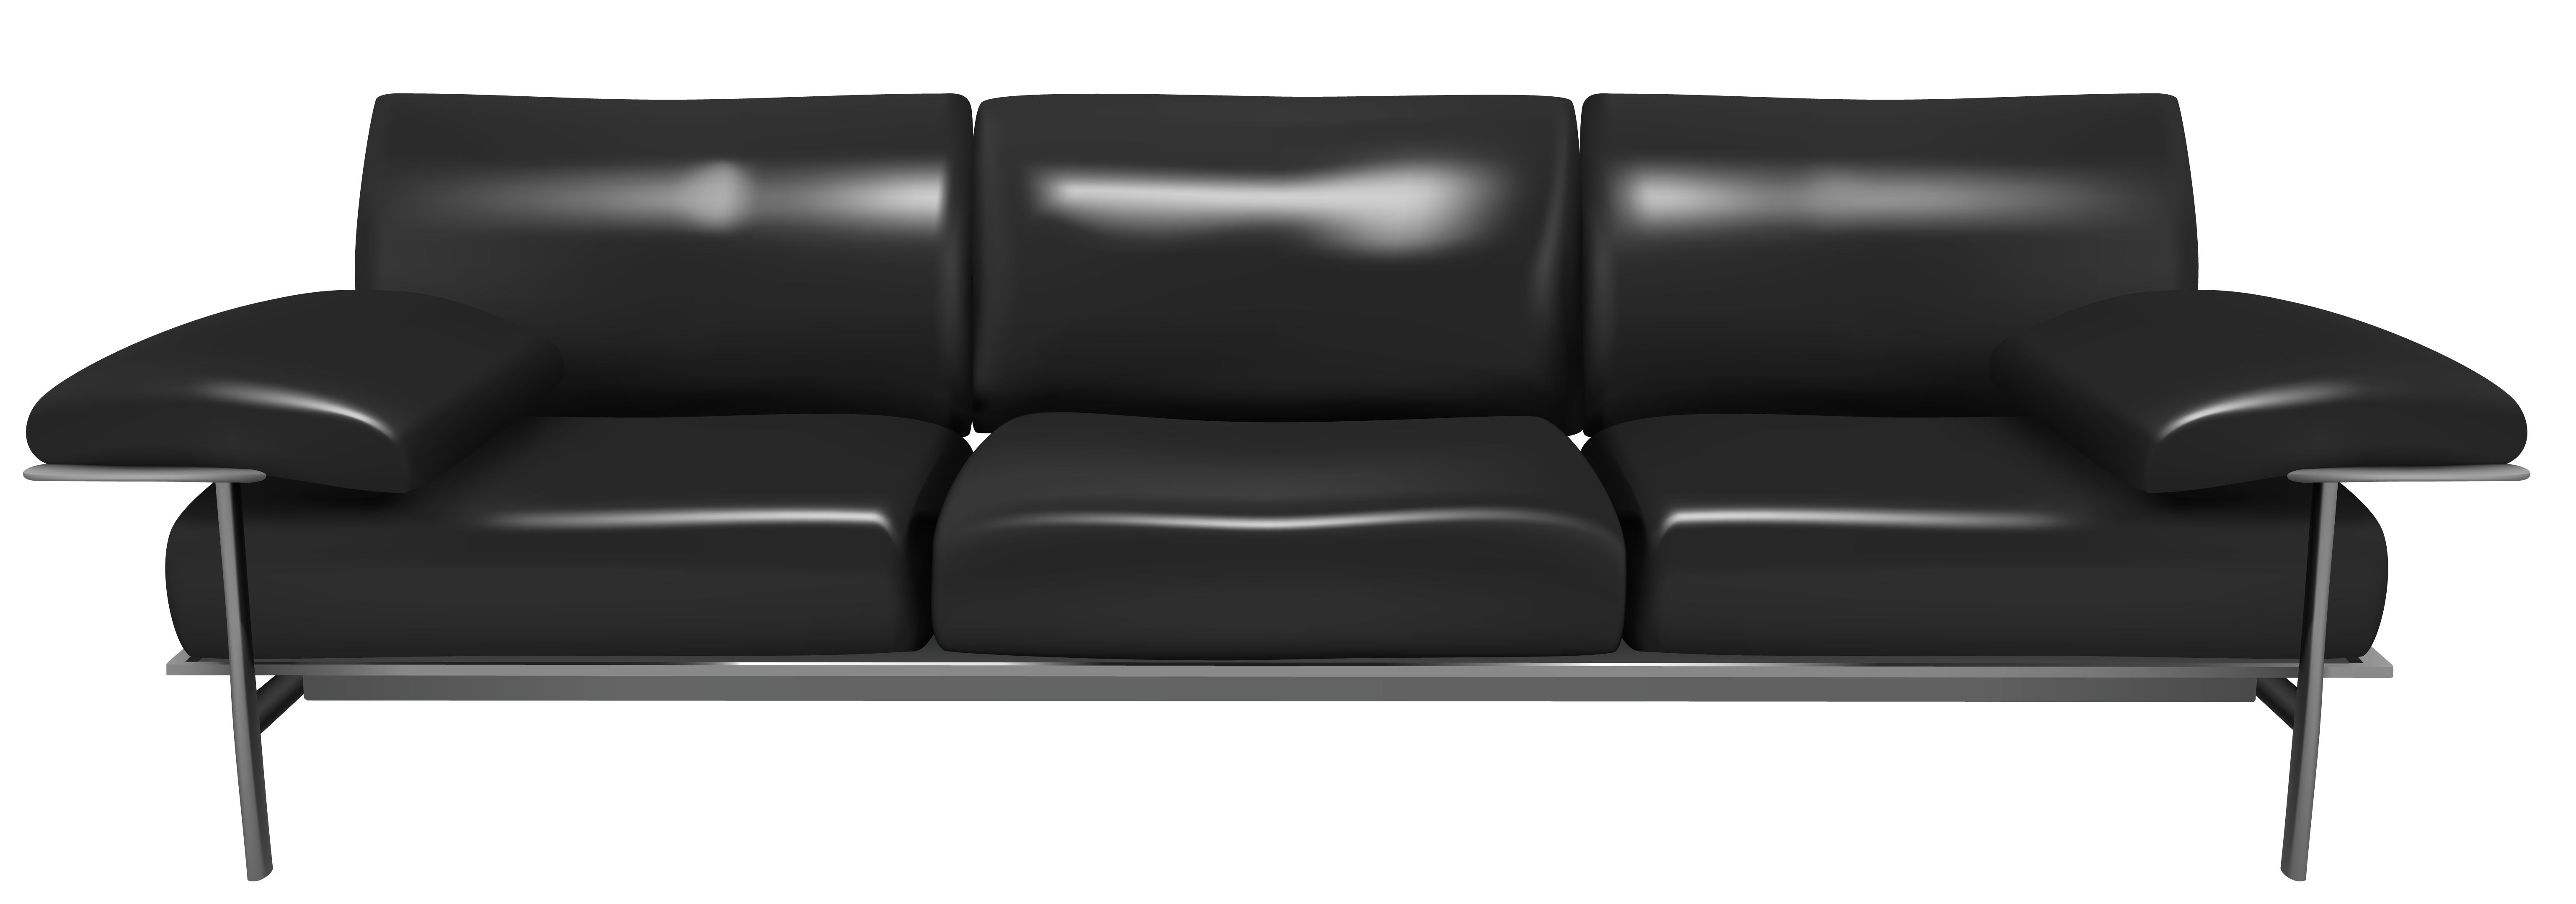 Cartoon couch png. Transparent black clipart gallery